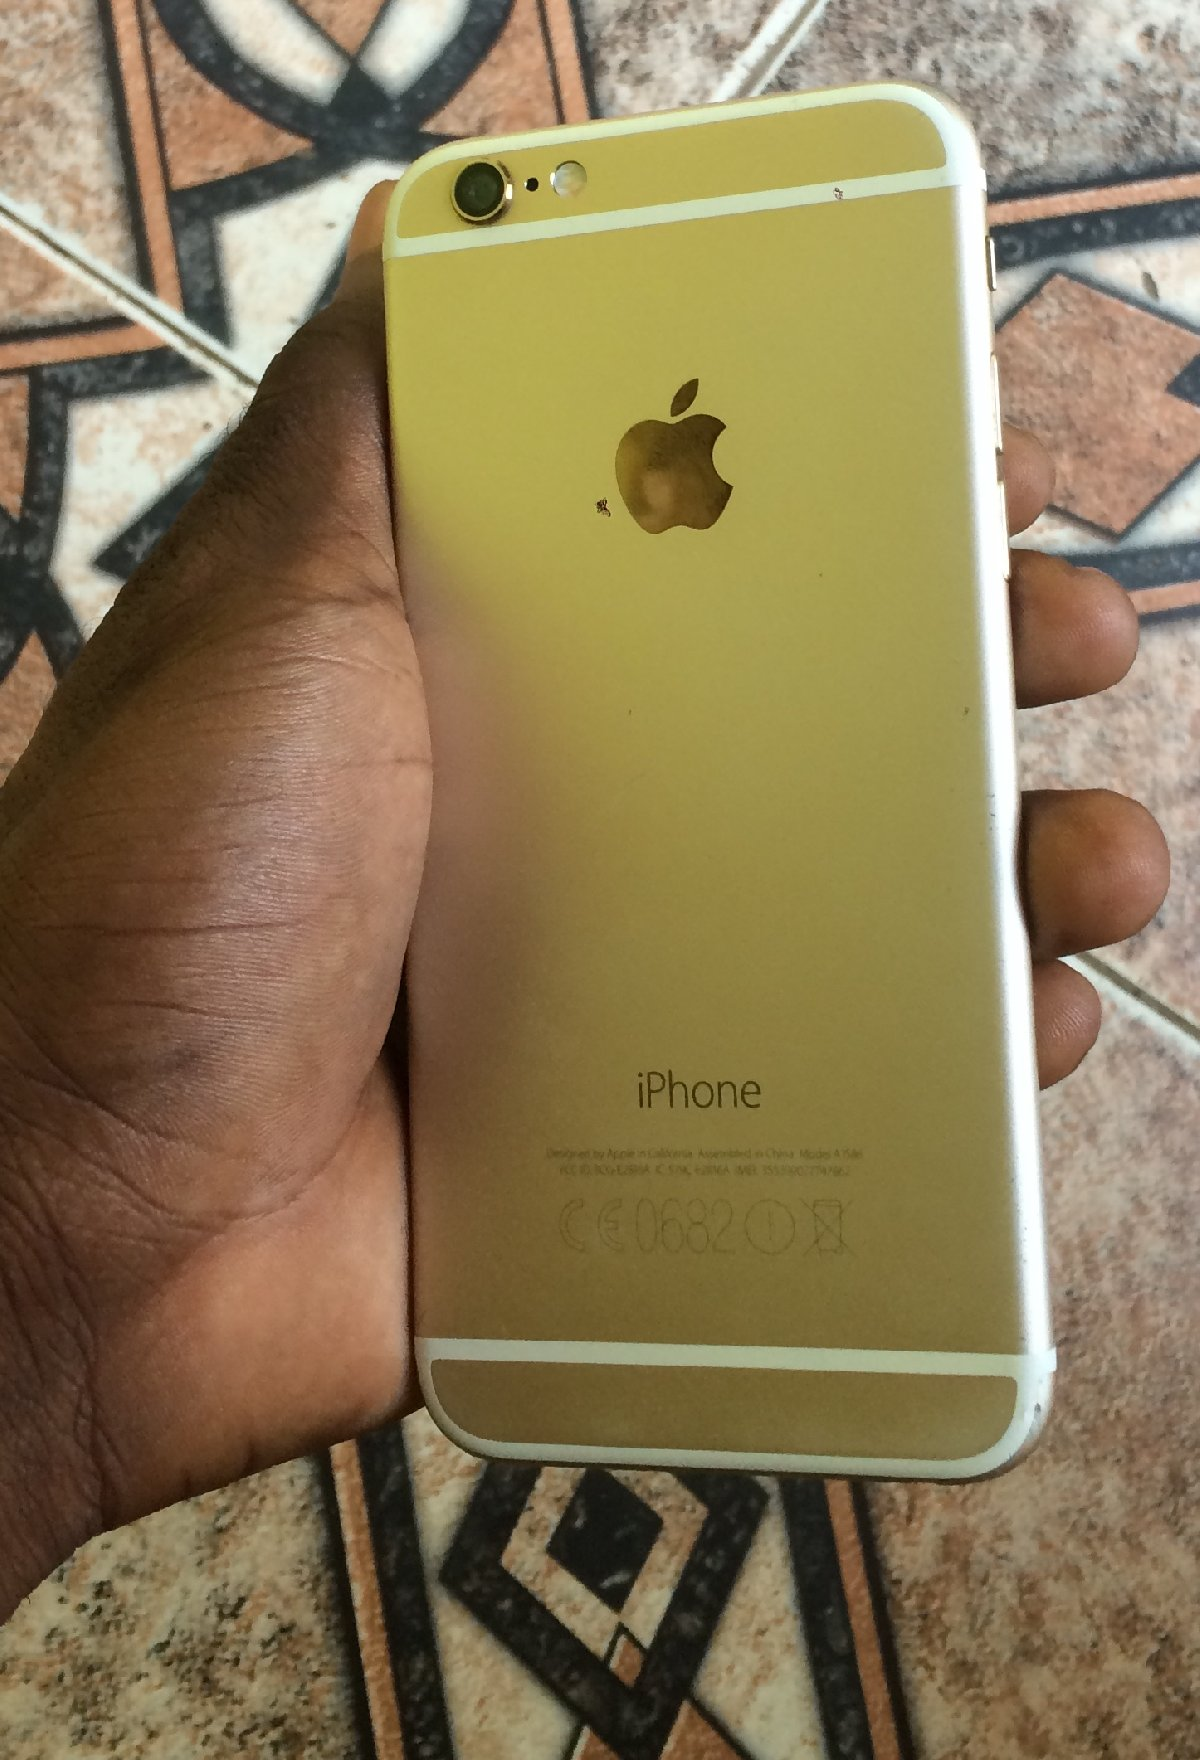 IPhone 6    Cameras And Power Button Needs To Fix for sale